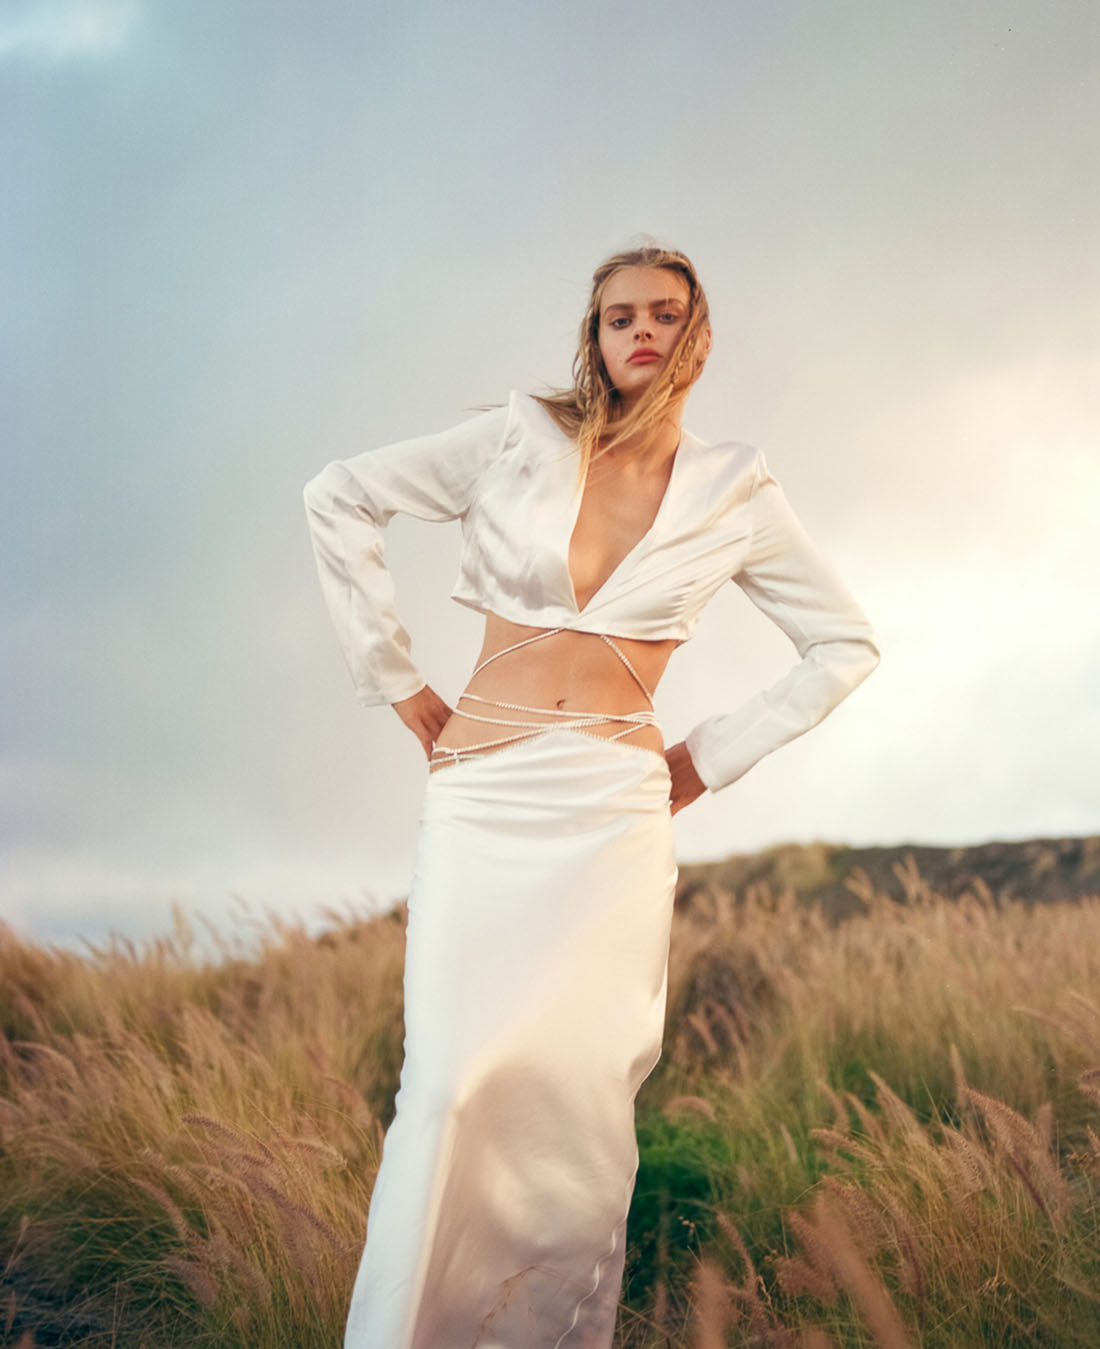 Zoe Blume by Jeremy Choh for L'Officiel Singapore February 2021